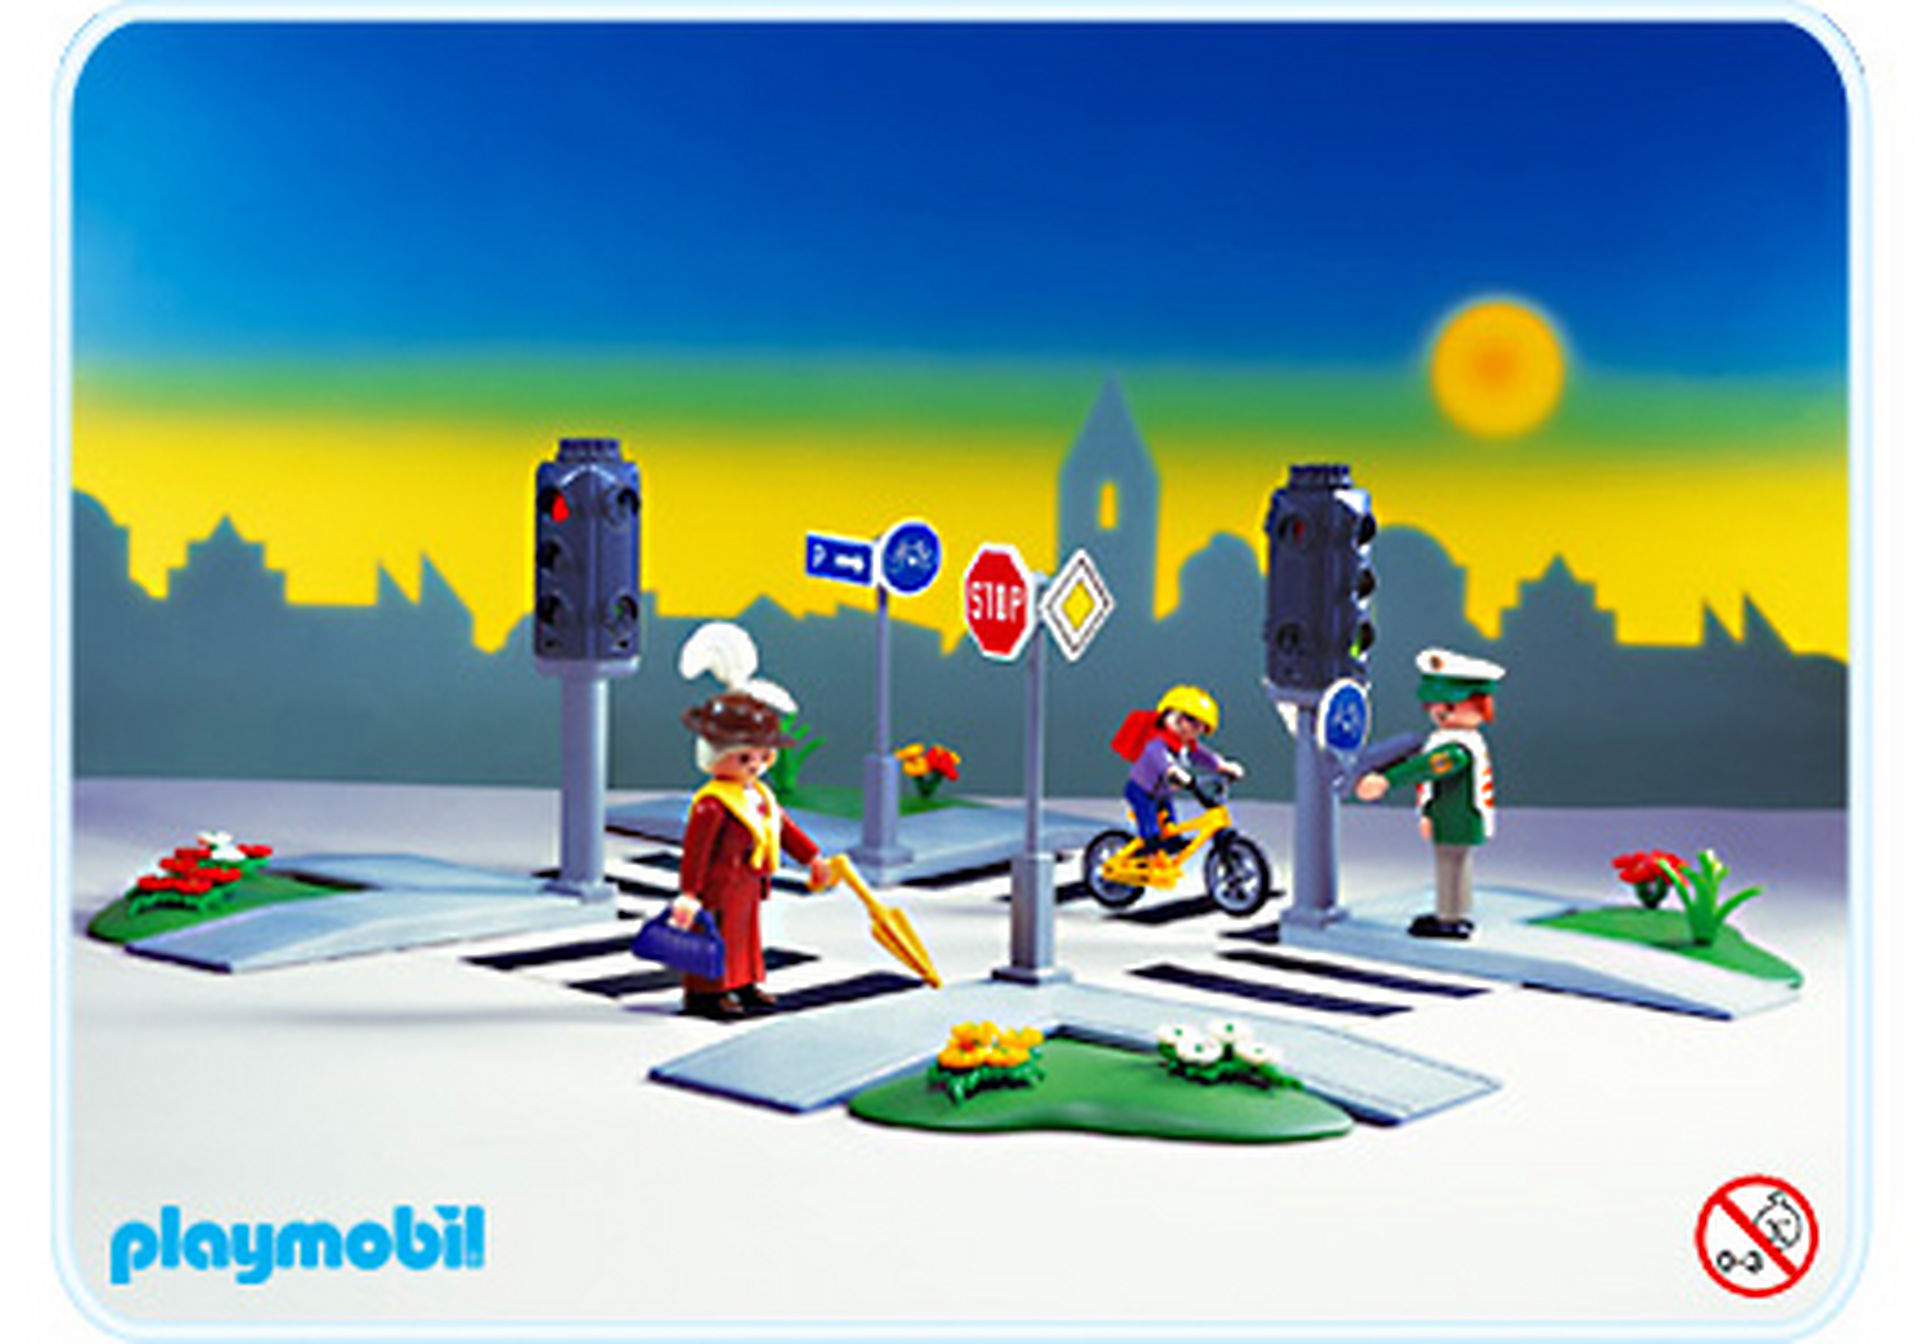 http://media.playmobil.com/i/playmobil/3982-A_product_detail/Kreuzung/Ampel